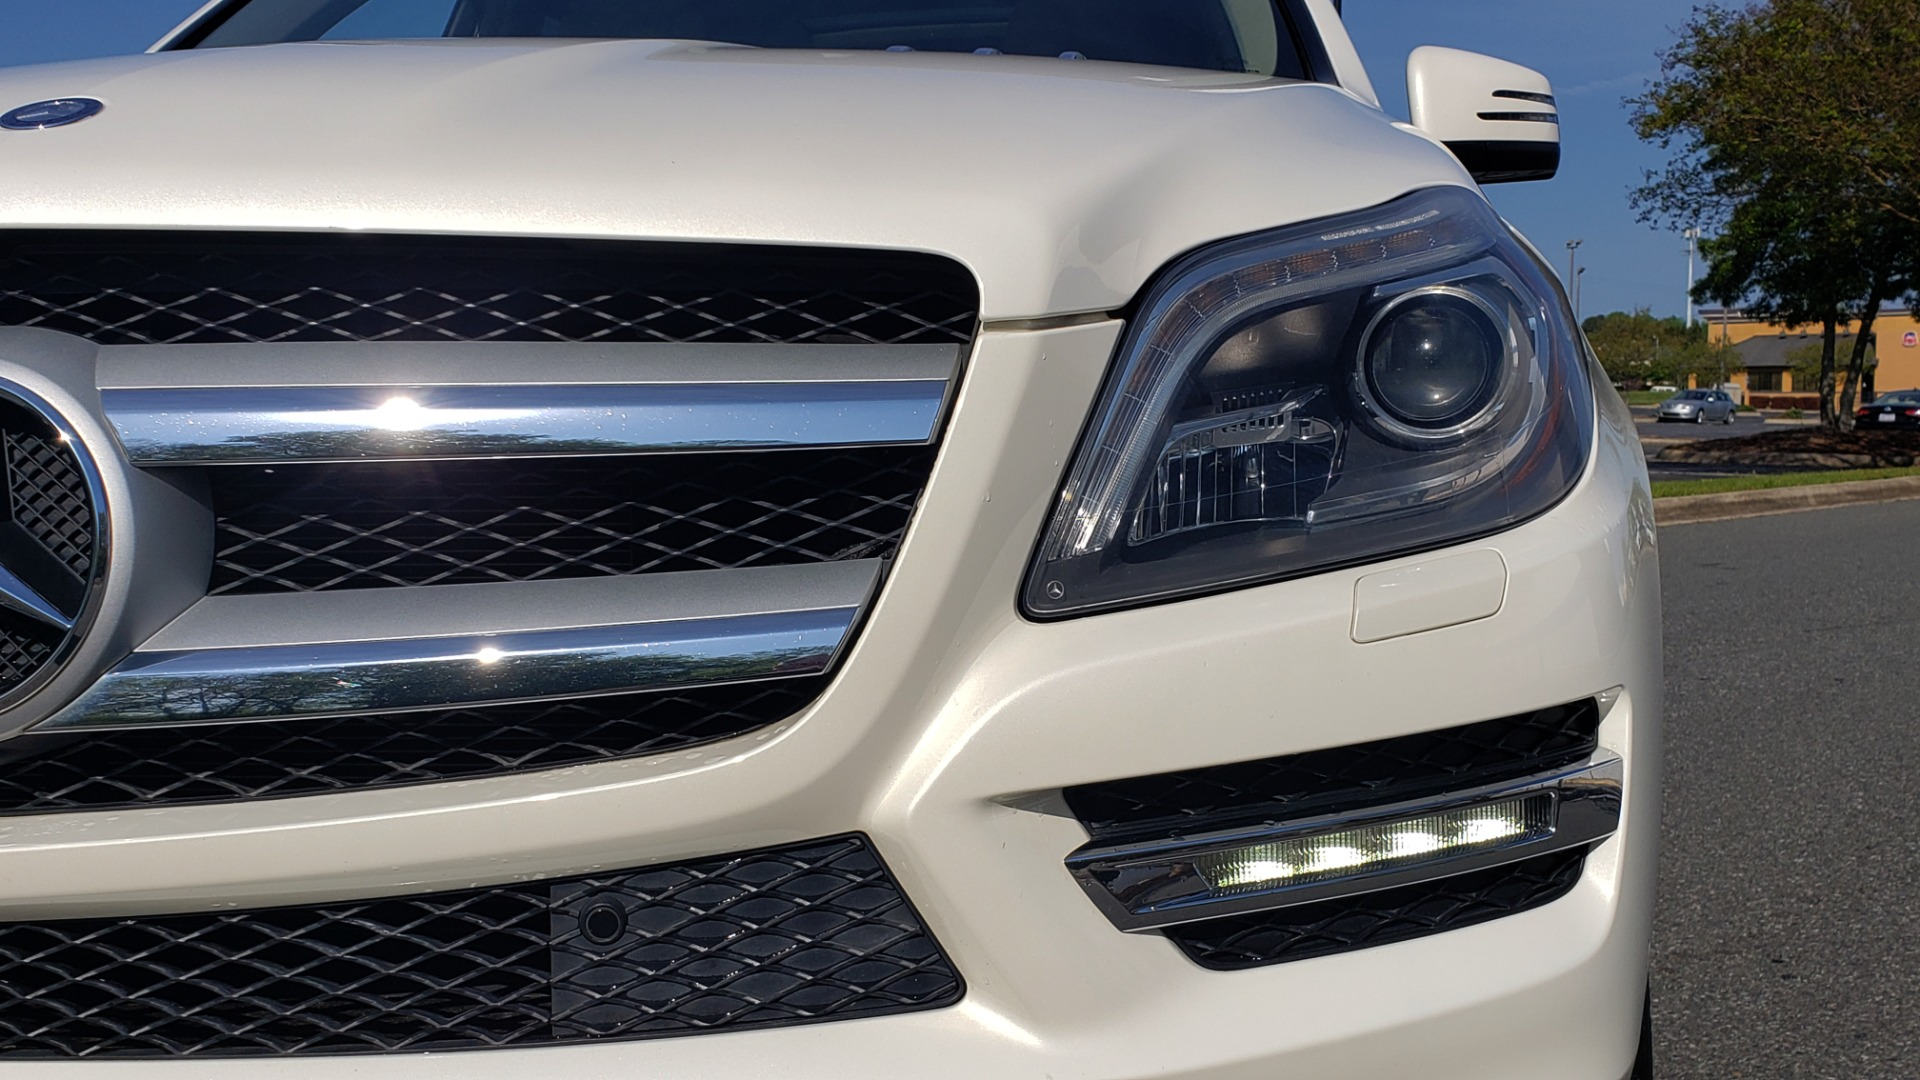 Used 2014 Mercedes-Benz GL-Class GL 450 PREMIUM / NAV / SUNROOF / 3-ROW / REARVIEW for sale Sold at Formula Imports in Charlotte NC 28227 30